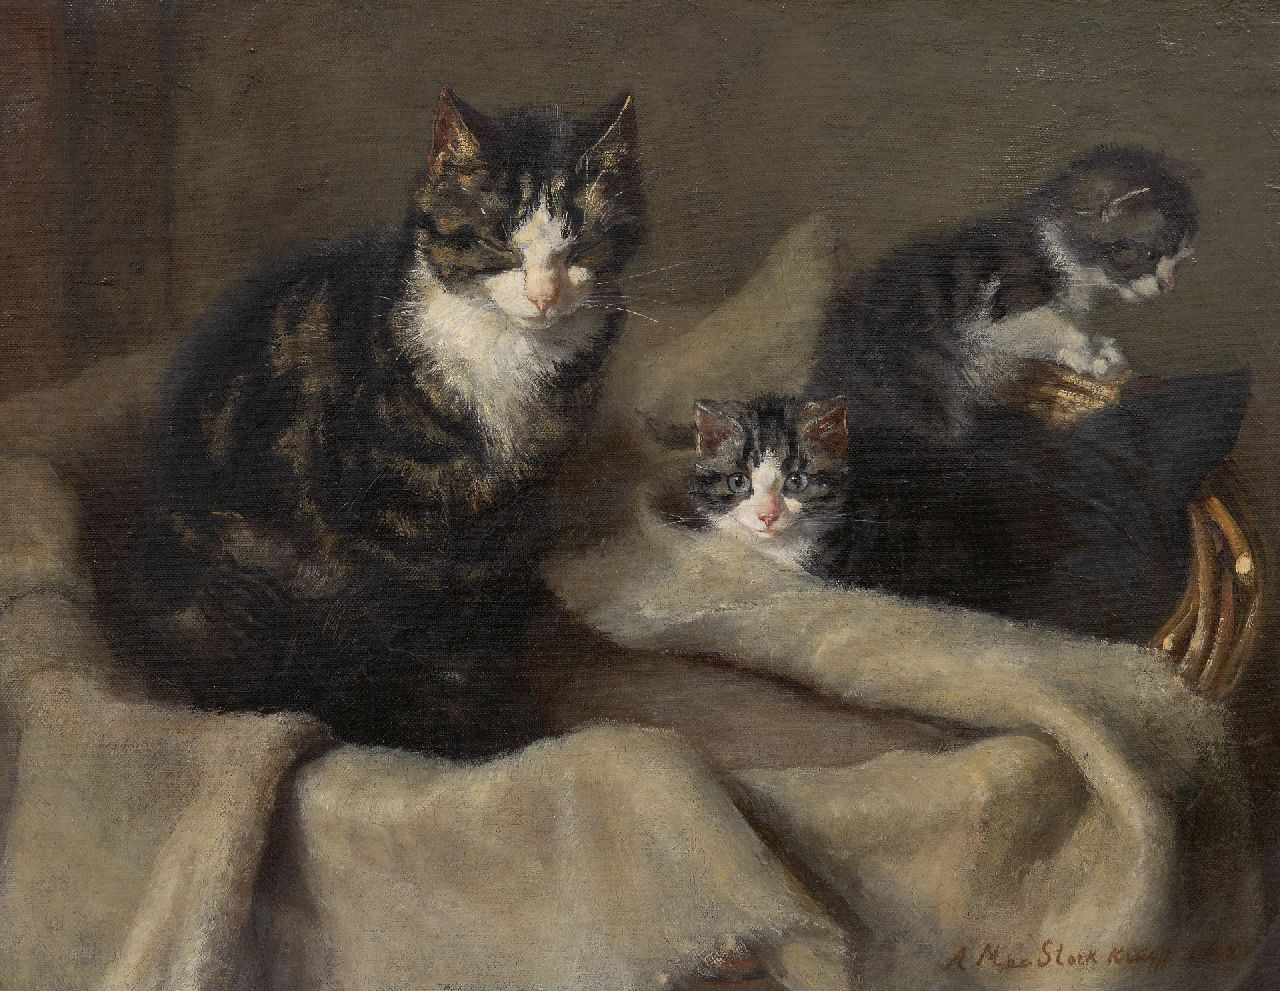 Anna Maria Kruijff | Mother cat with two kittens, oil on canvas, 35.2 x 45.4 cm, signed l.r. and dated 1908